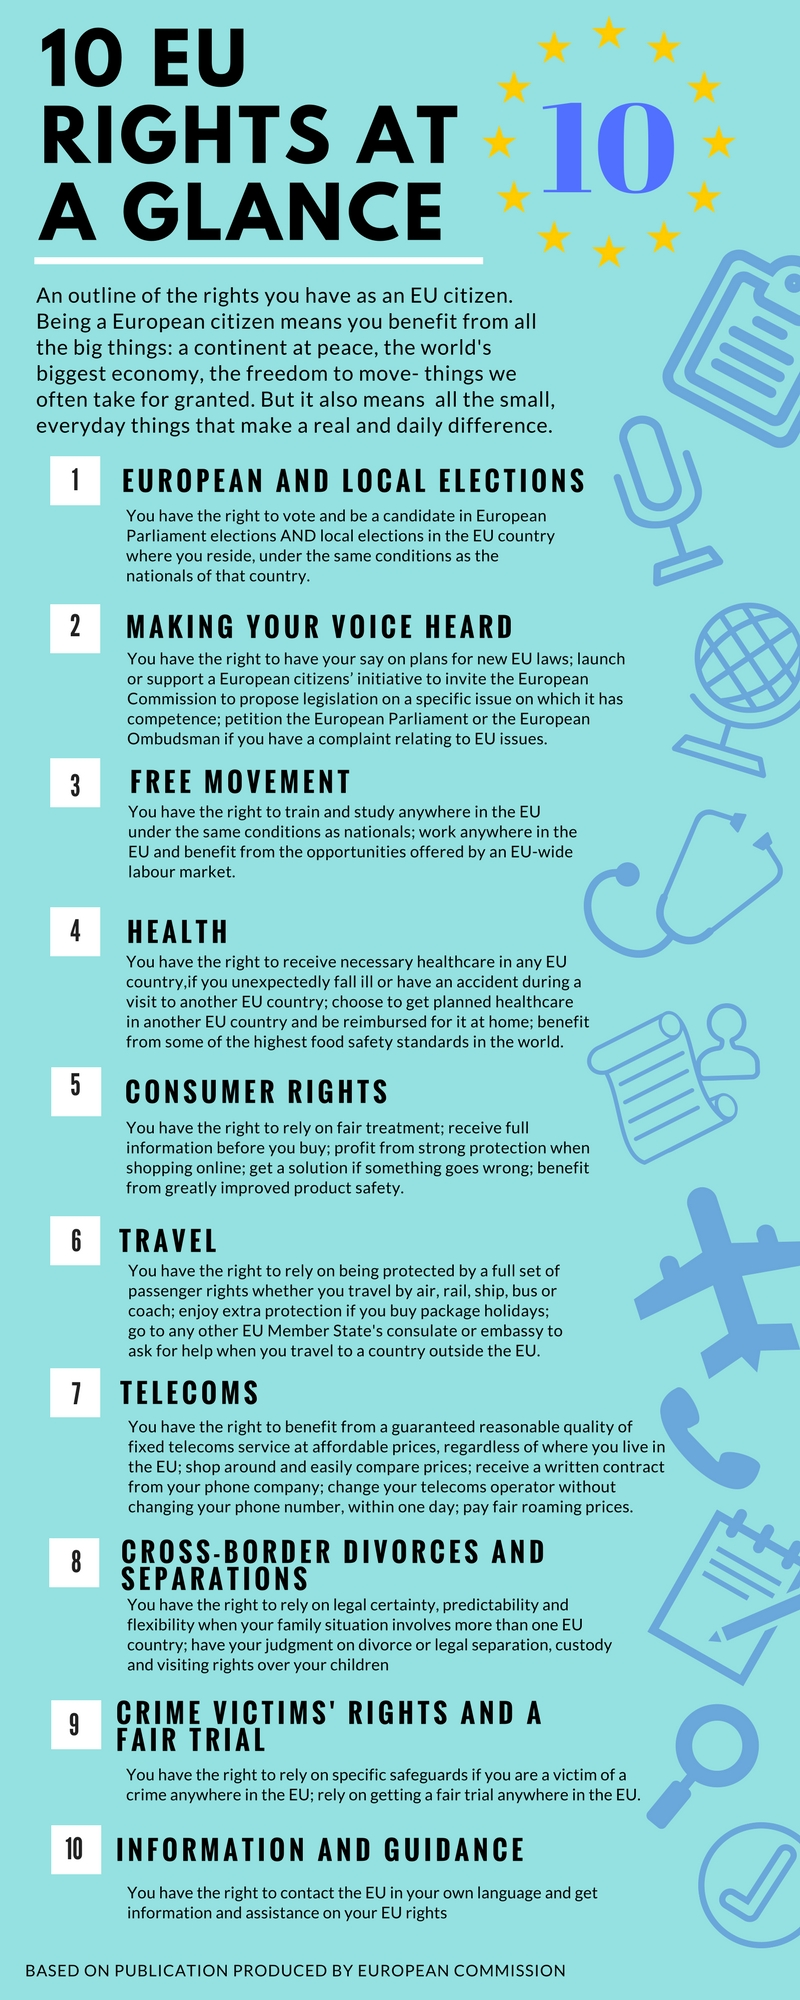 10 EU rights at a glance - TO USE